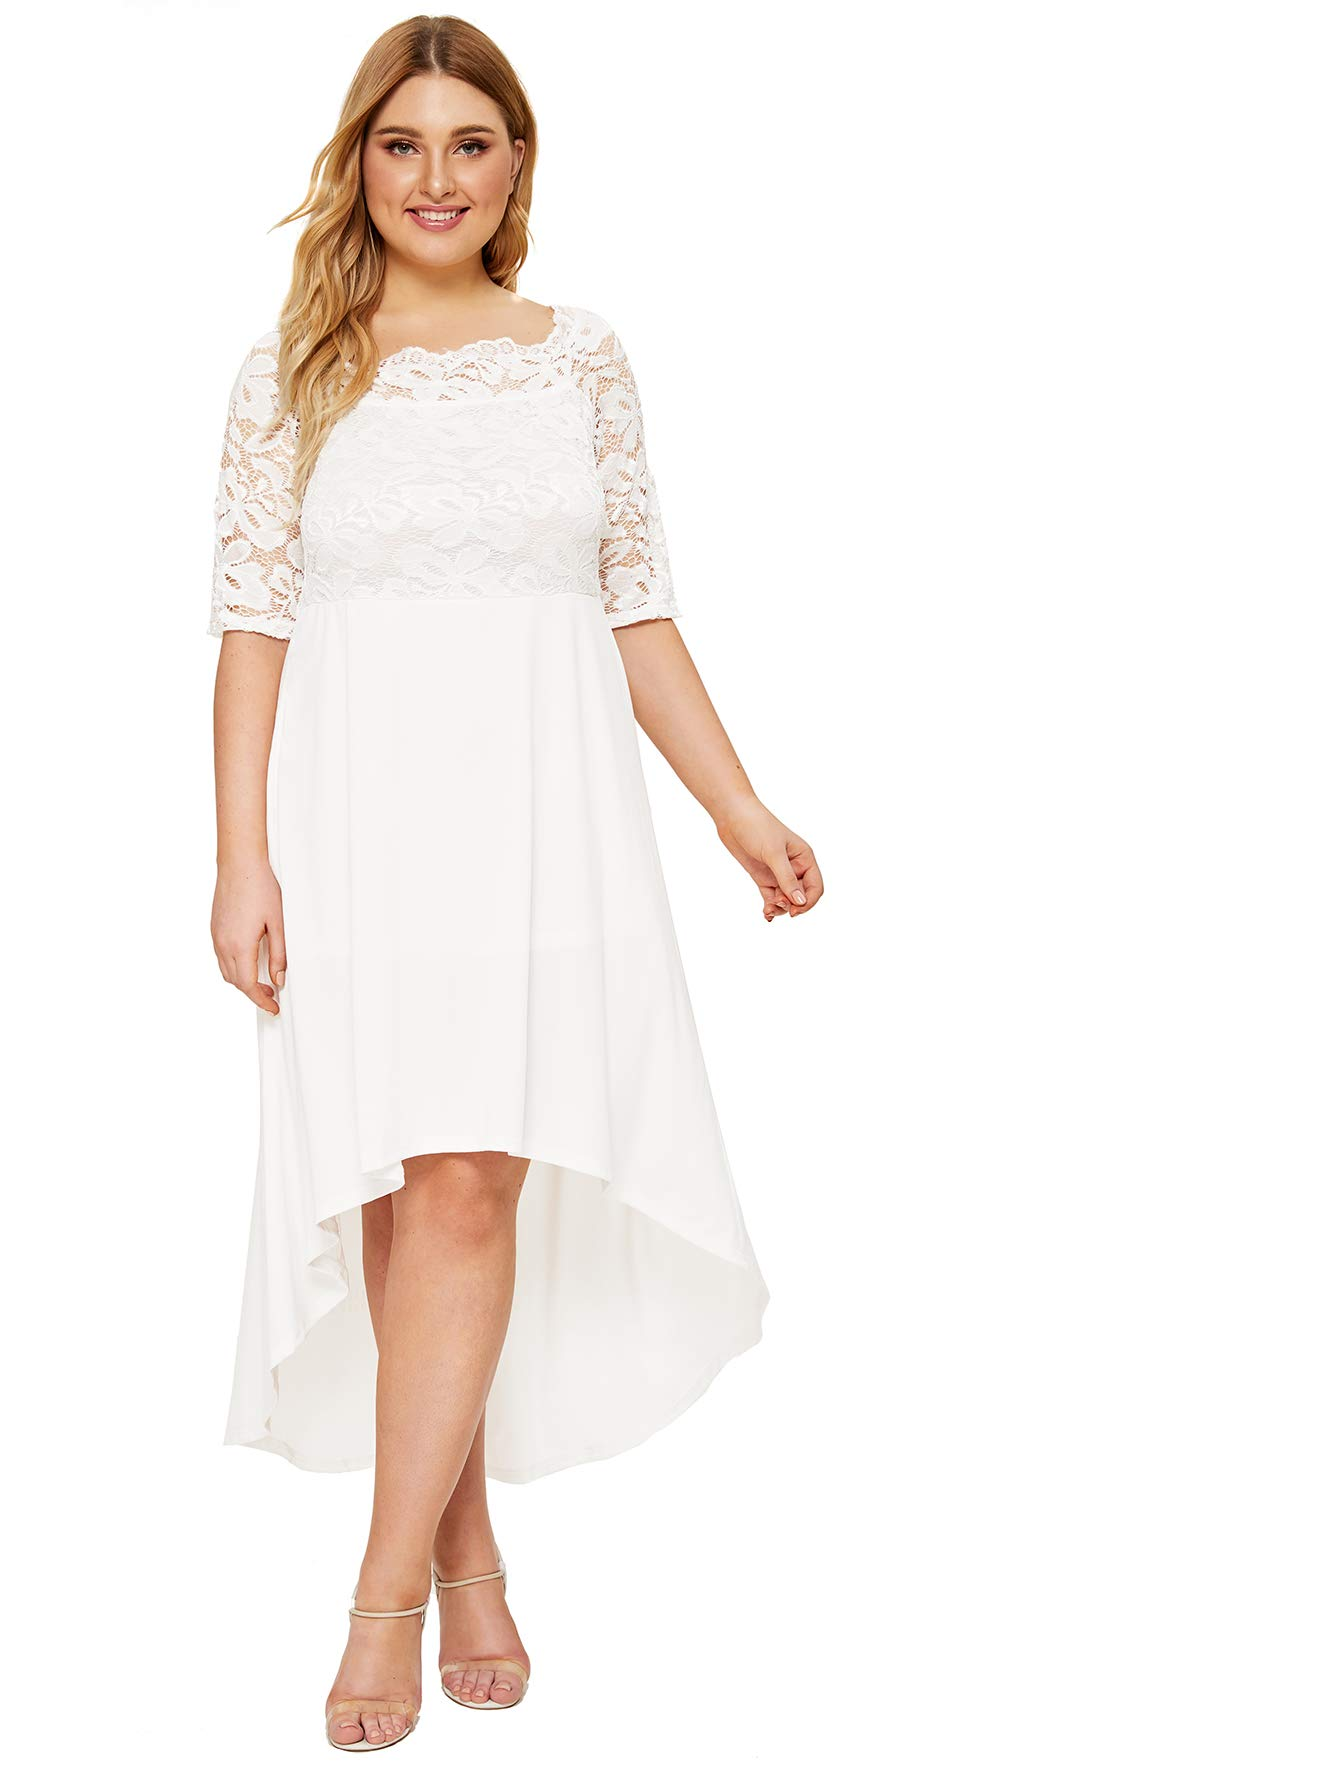 Plus Size Dresses - Women's Half Sleeves V-Neckline Lace Top Plus Size Cocktail Party Swing Dress